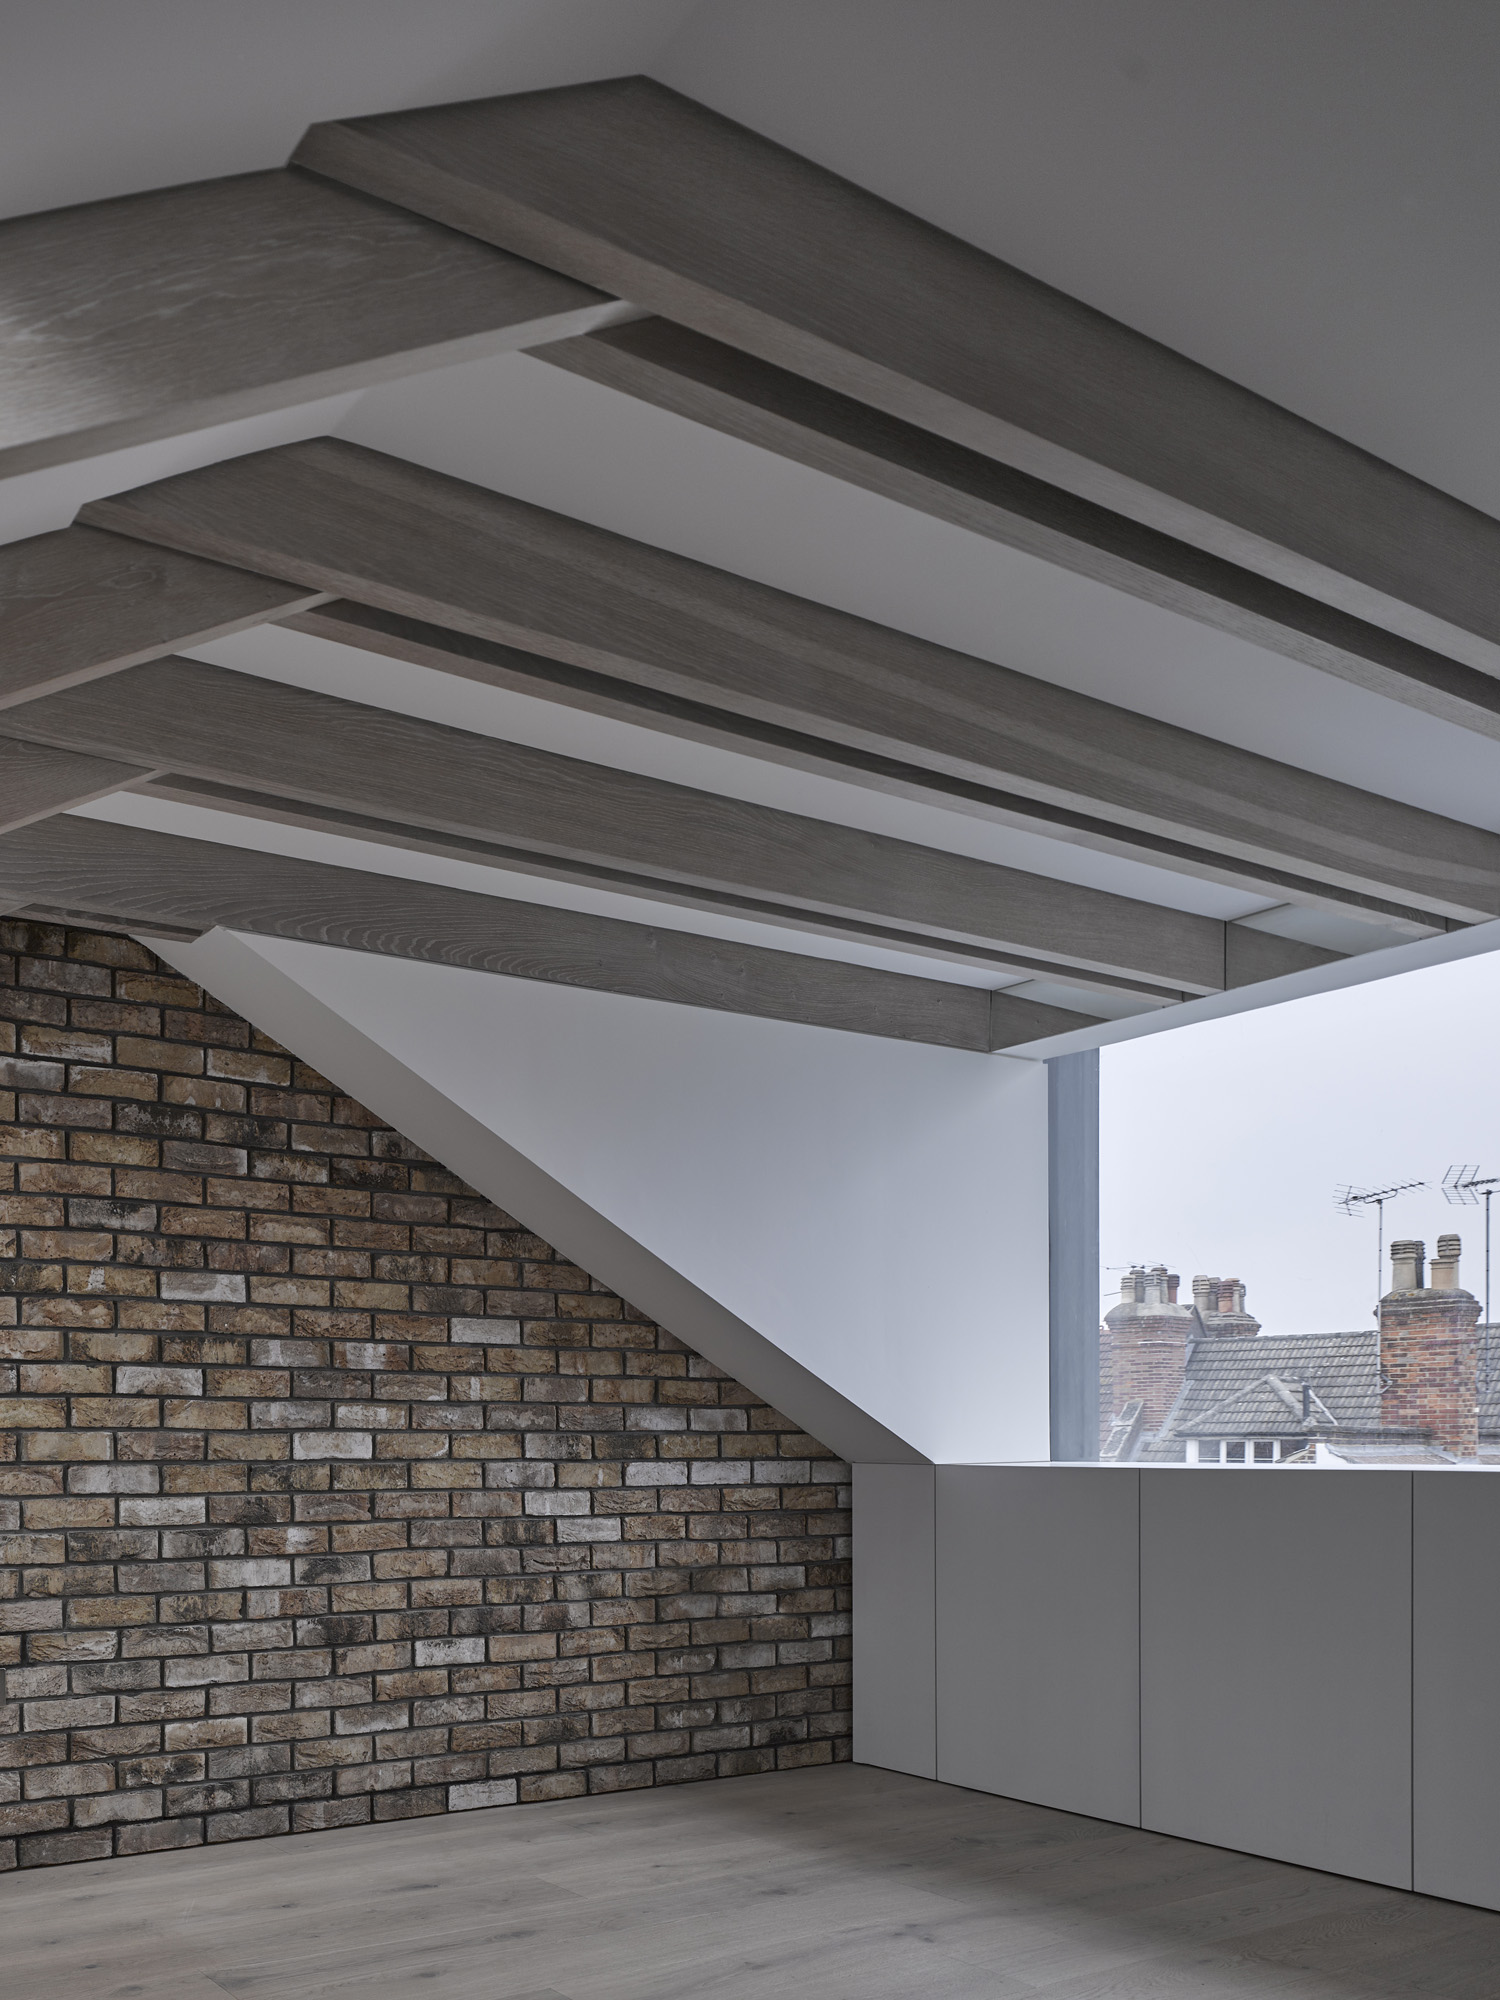 reveal in roof-con_form_architects_07.jpg